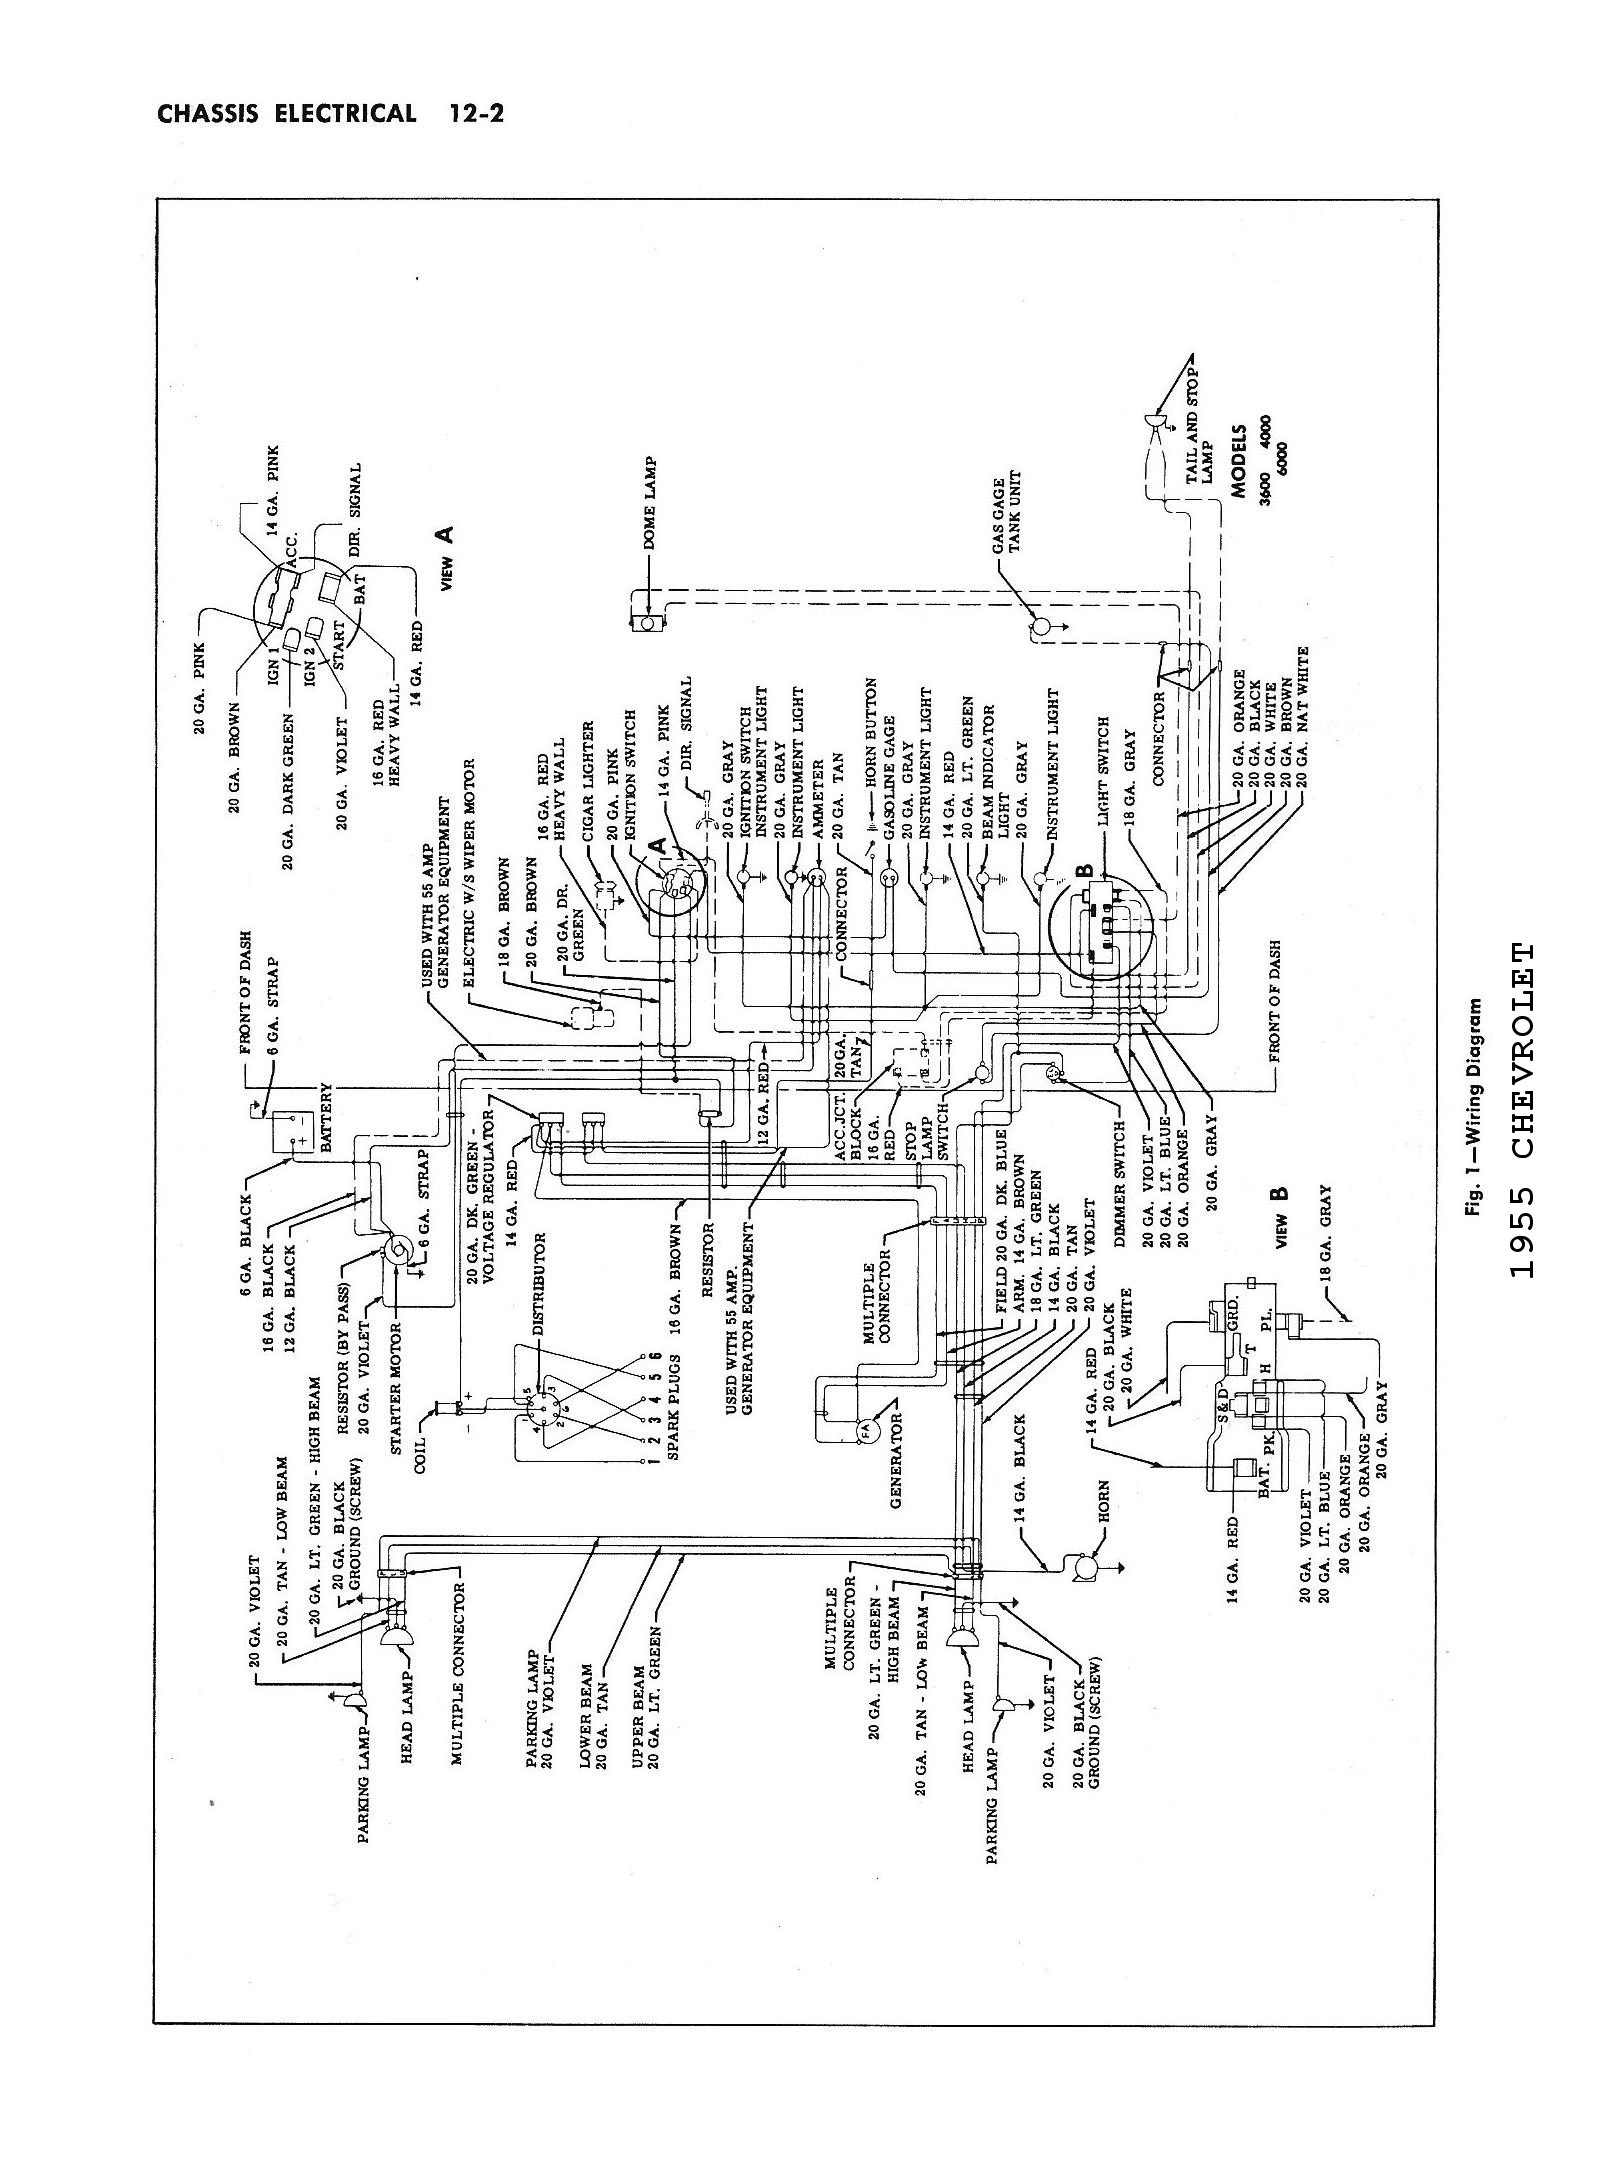 55ctsm1202 chevy wiring diagrams chevy truck wiring diagram at et-consult.org